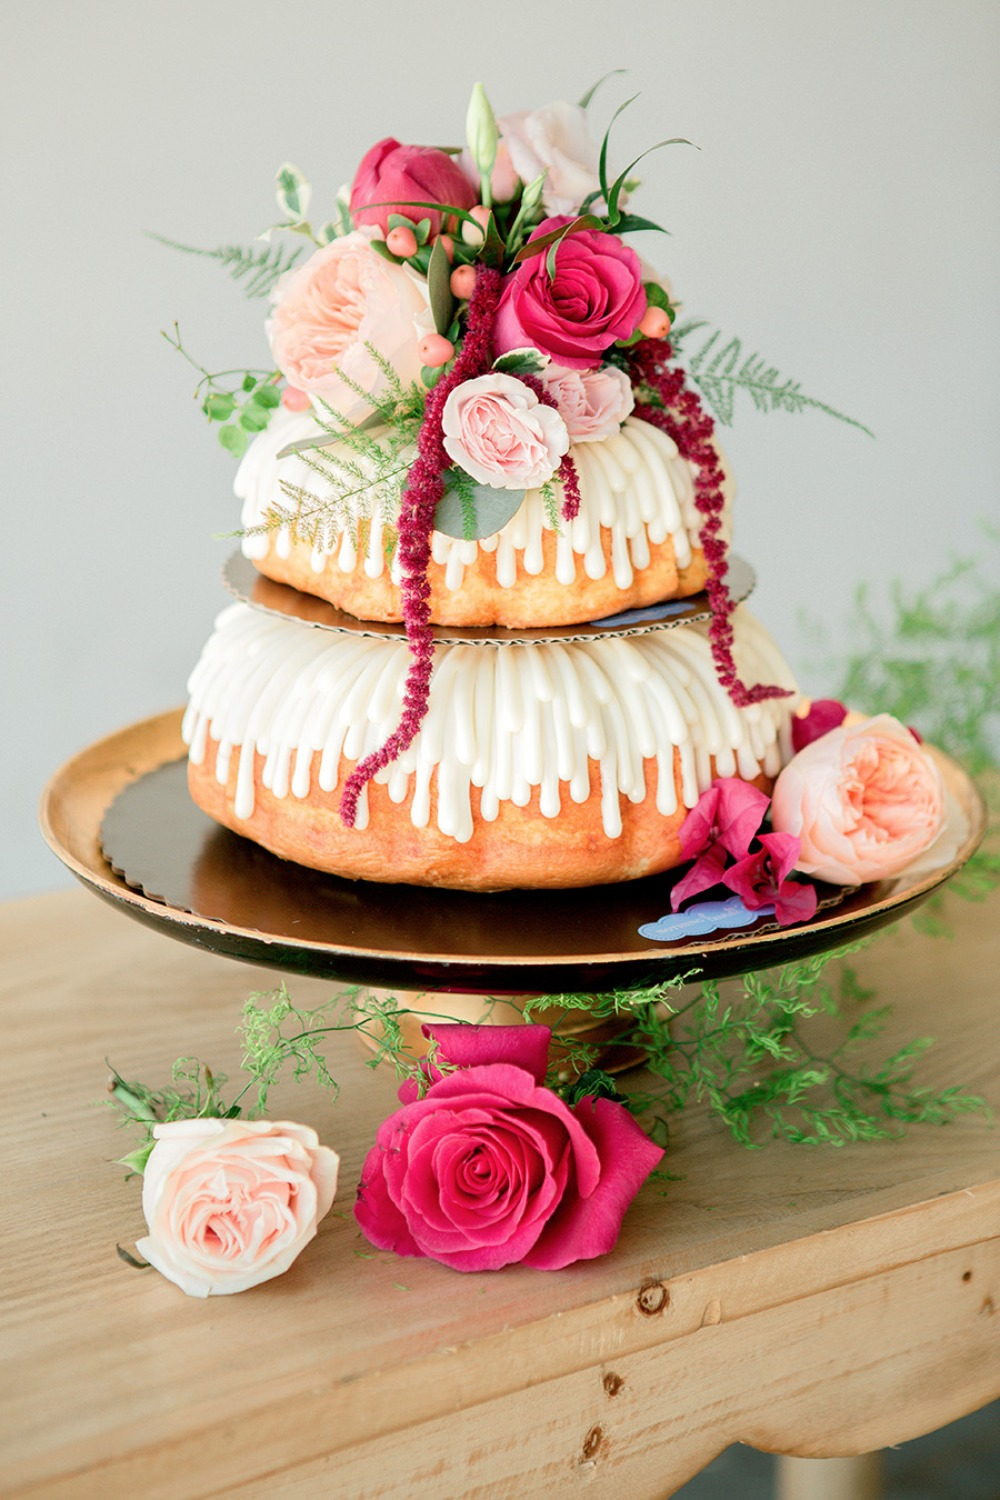 Pretty wedding bundt cake